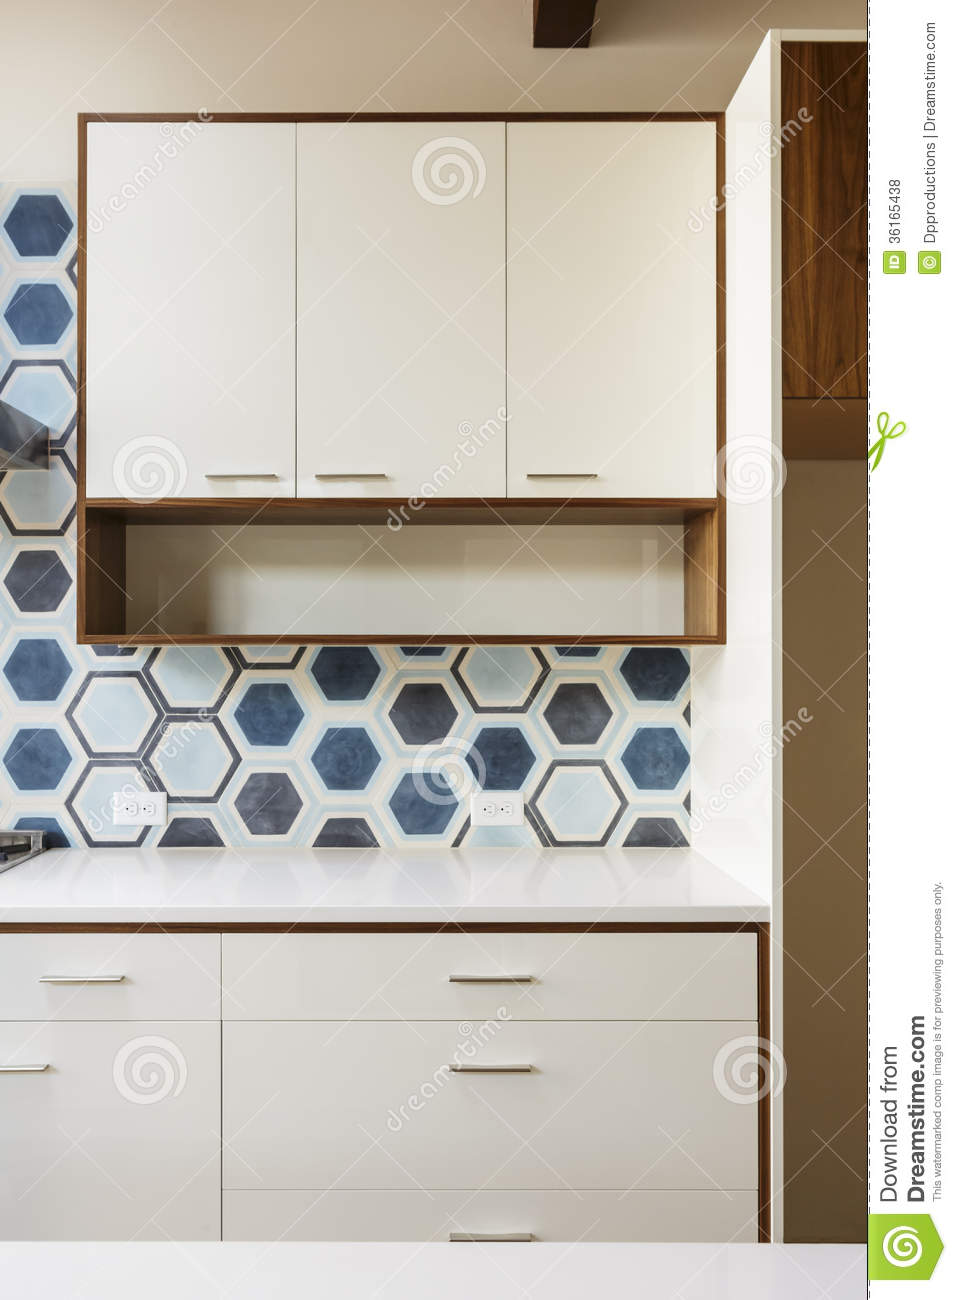 White Kitchen Cabinet In Modern Home With Blue Tile Stock